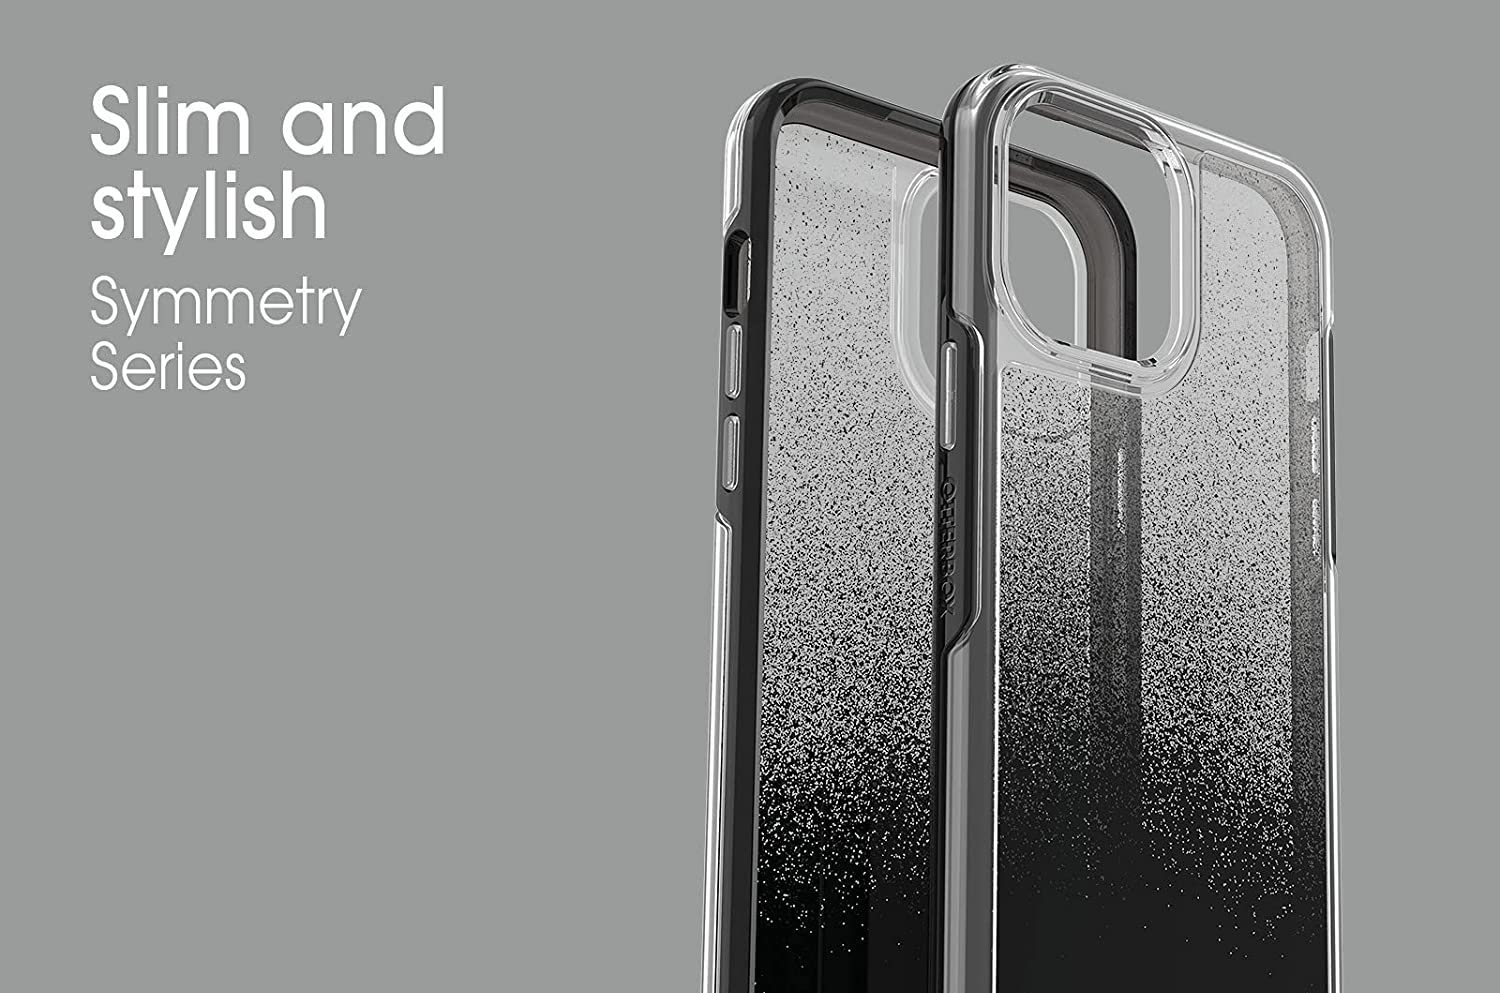 Otterbox Symmetry best iPhone 13 Pro Max cases